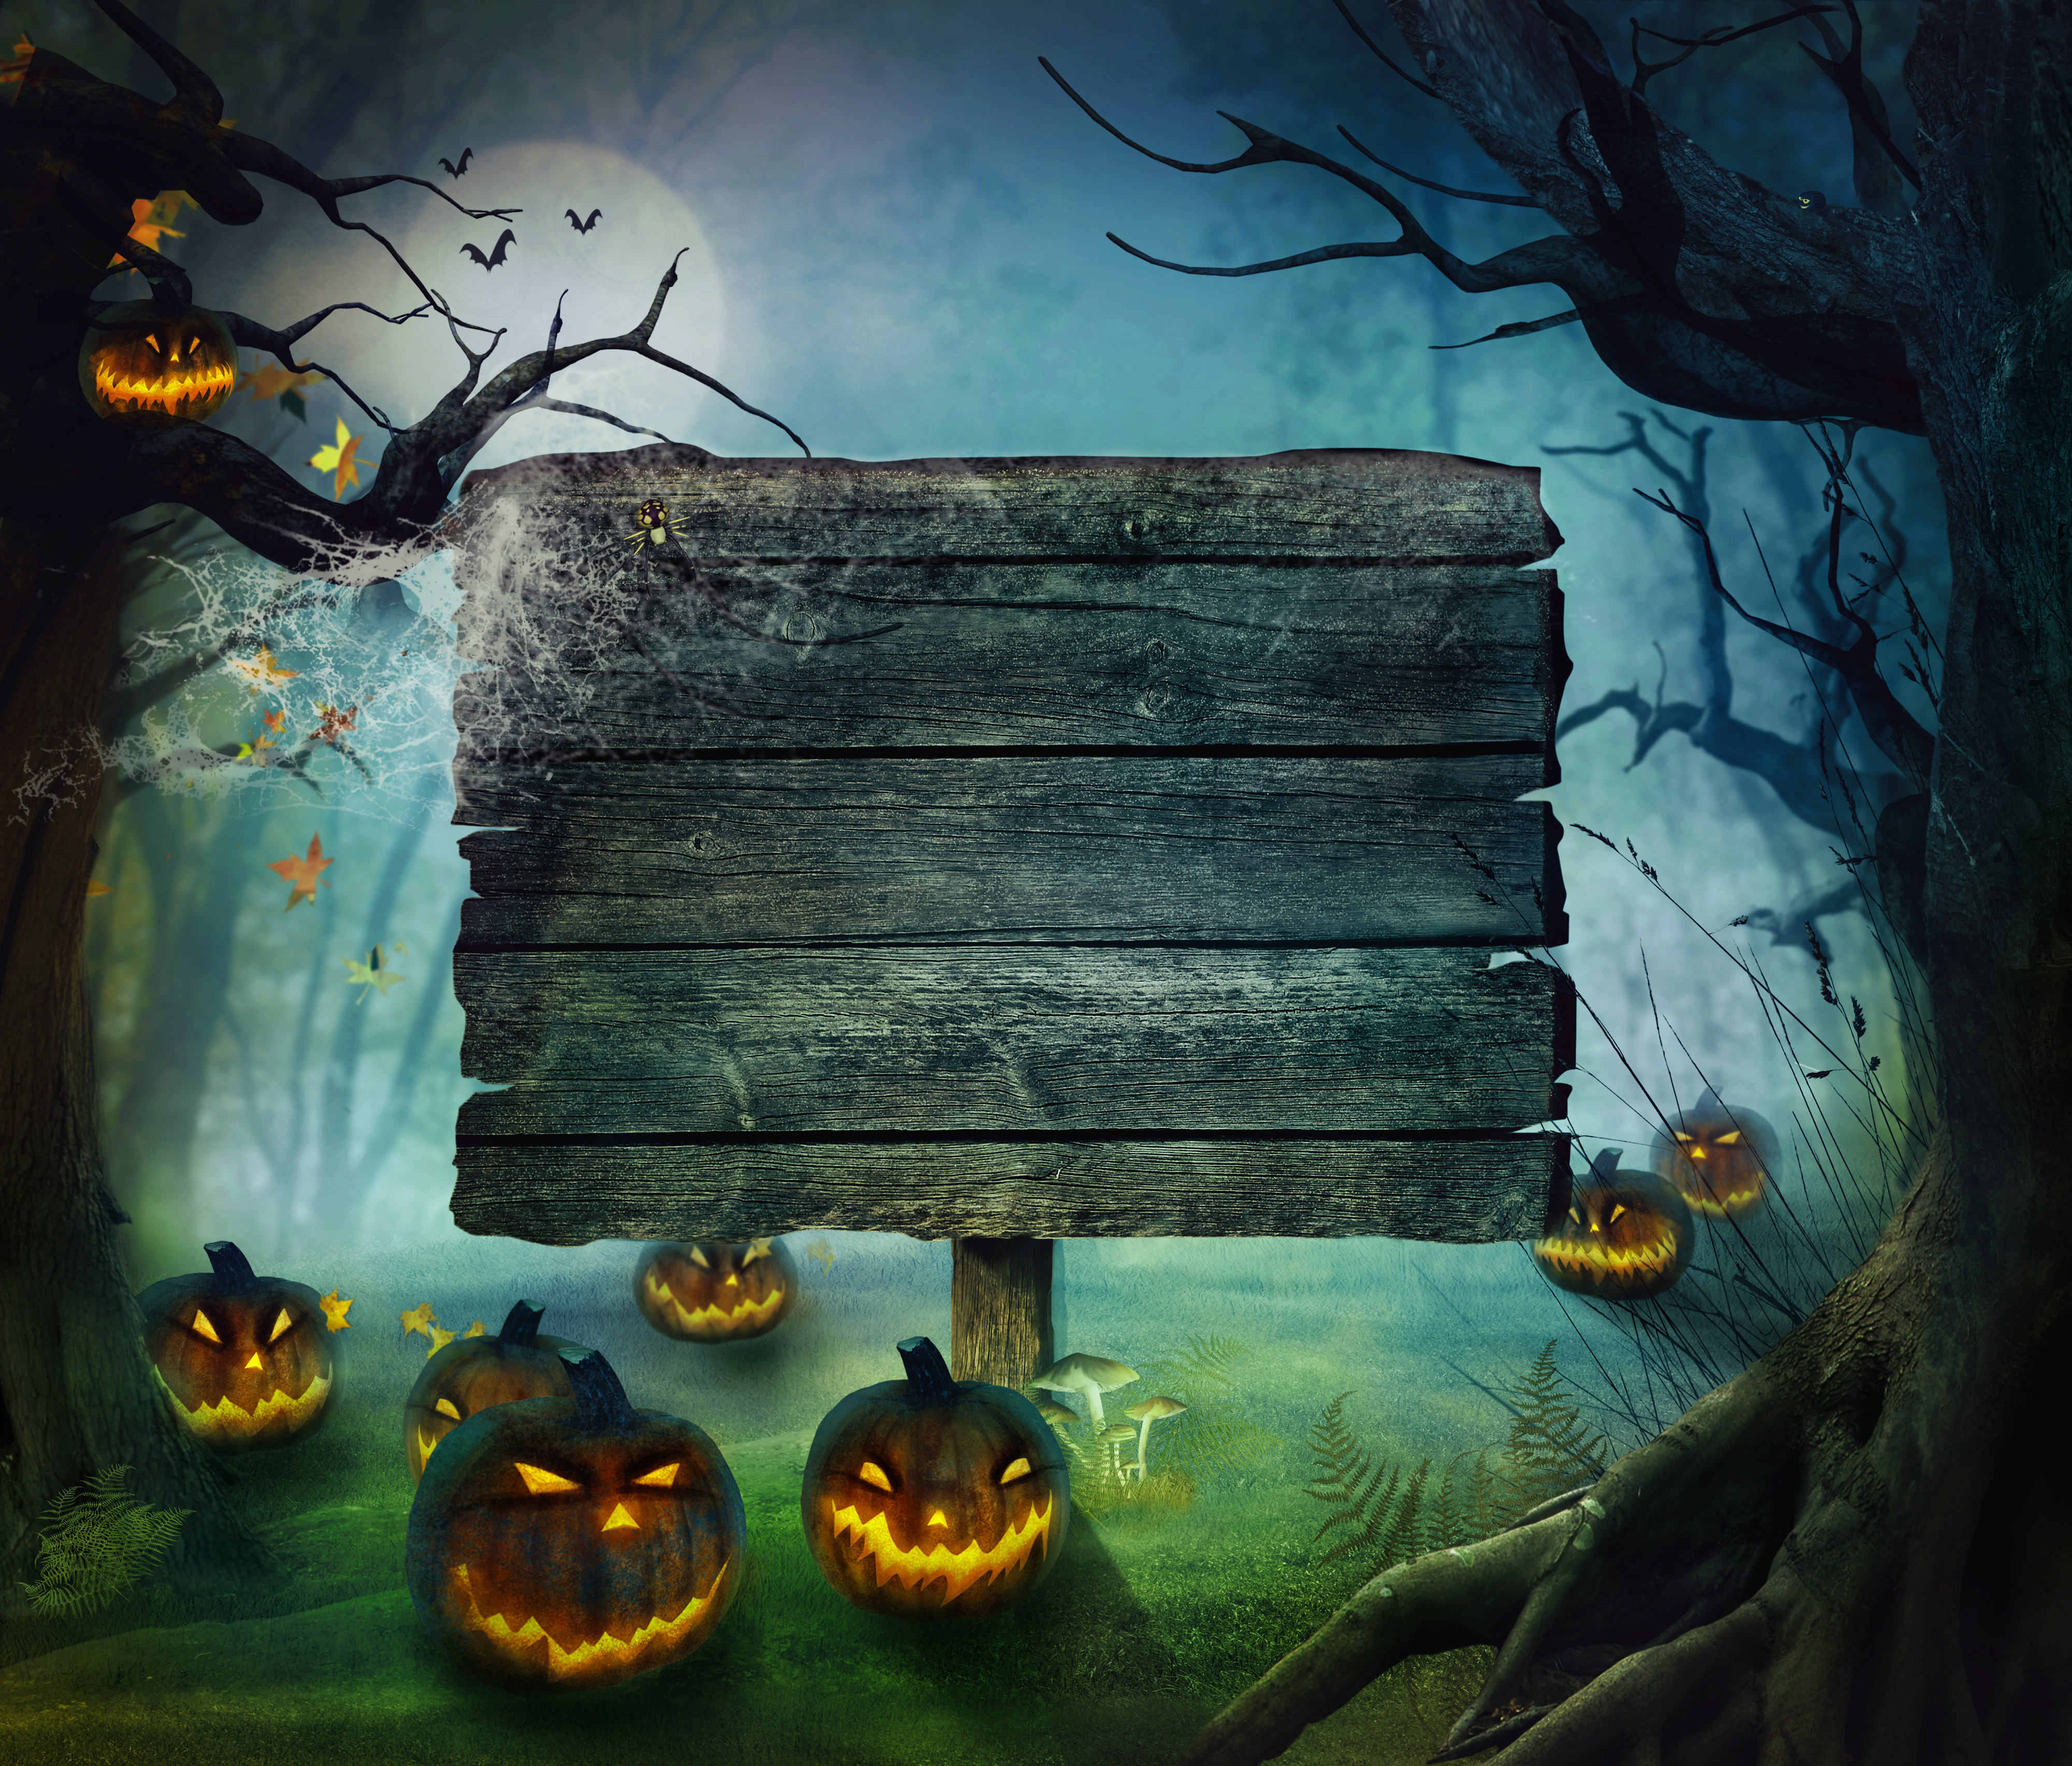 4000x3409 - Scary Halloween Background 21